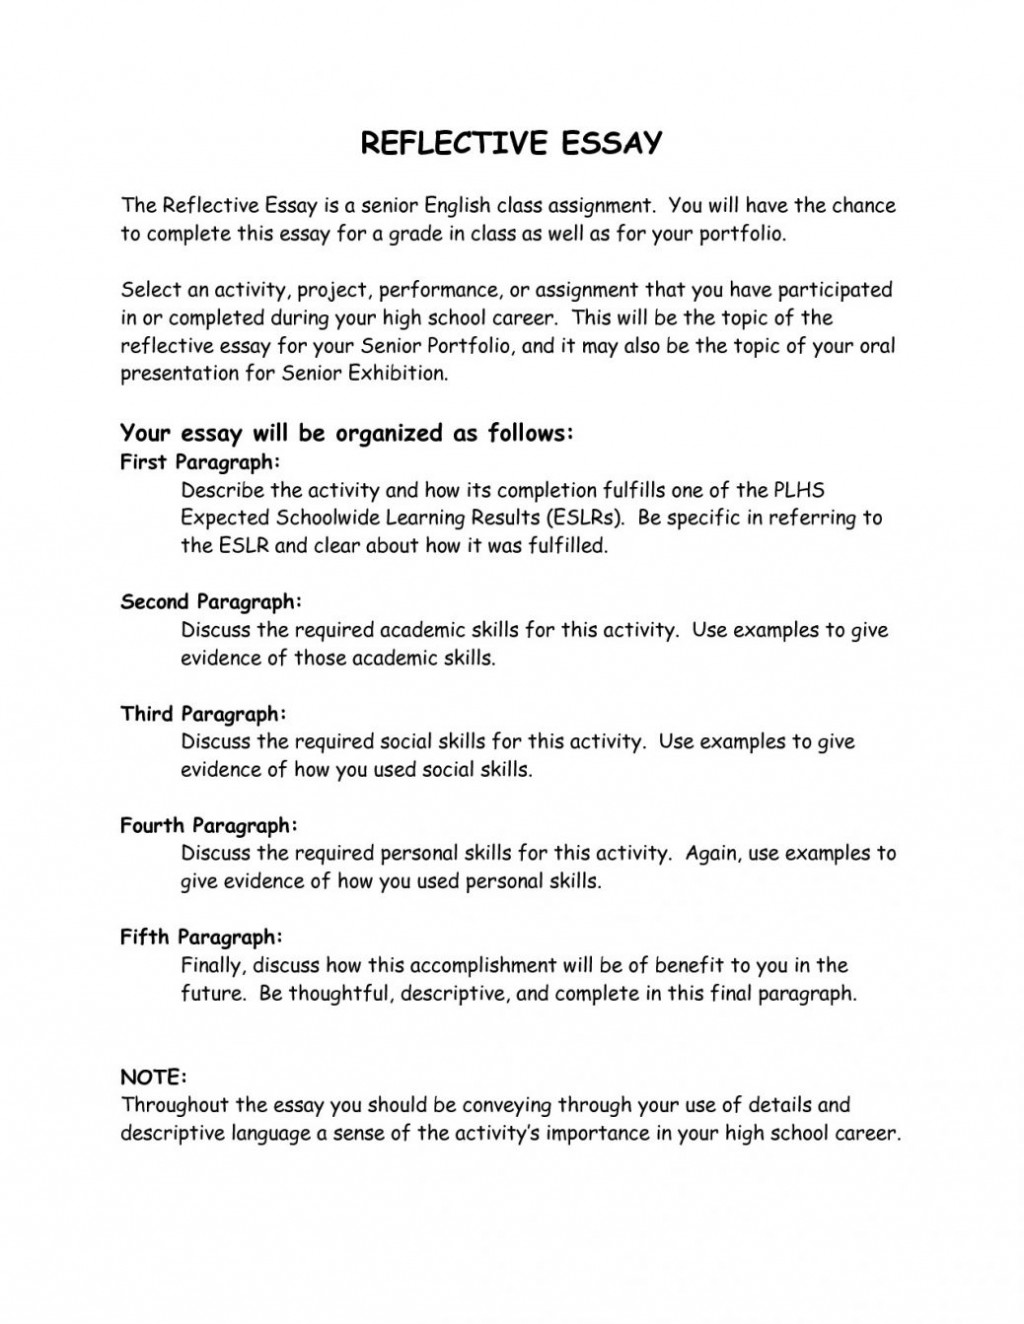 022 Paragraph Development Examples Essay Template Staggering Image Ideas Developing Thesis High School Researchr Writing Service Awesome 1038x1343 Cool Topics To Do On Impressive A Research Paper Interesting For Medical Of In Computer Science Economic Large